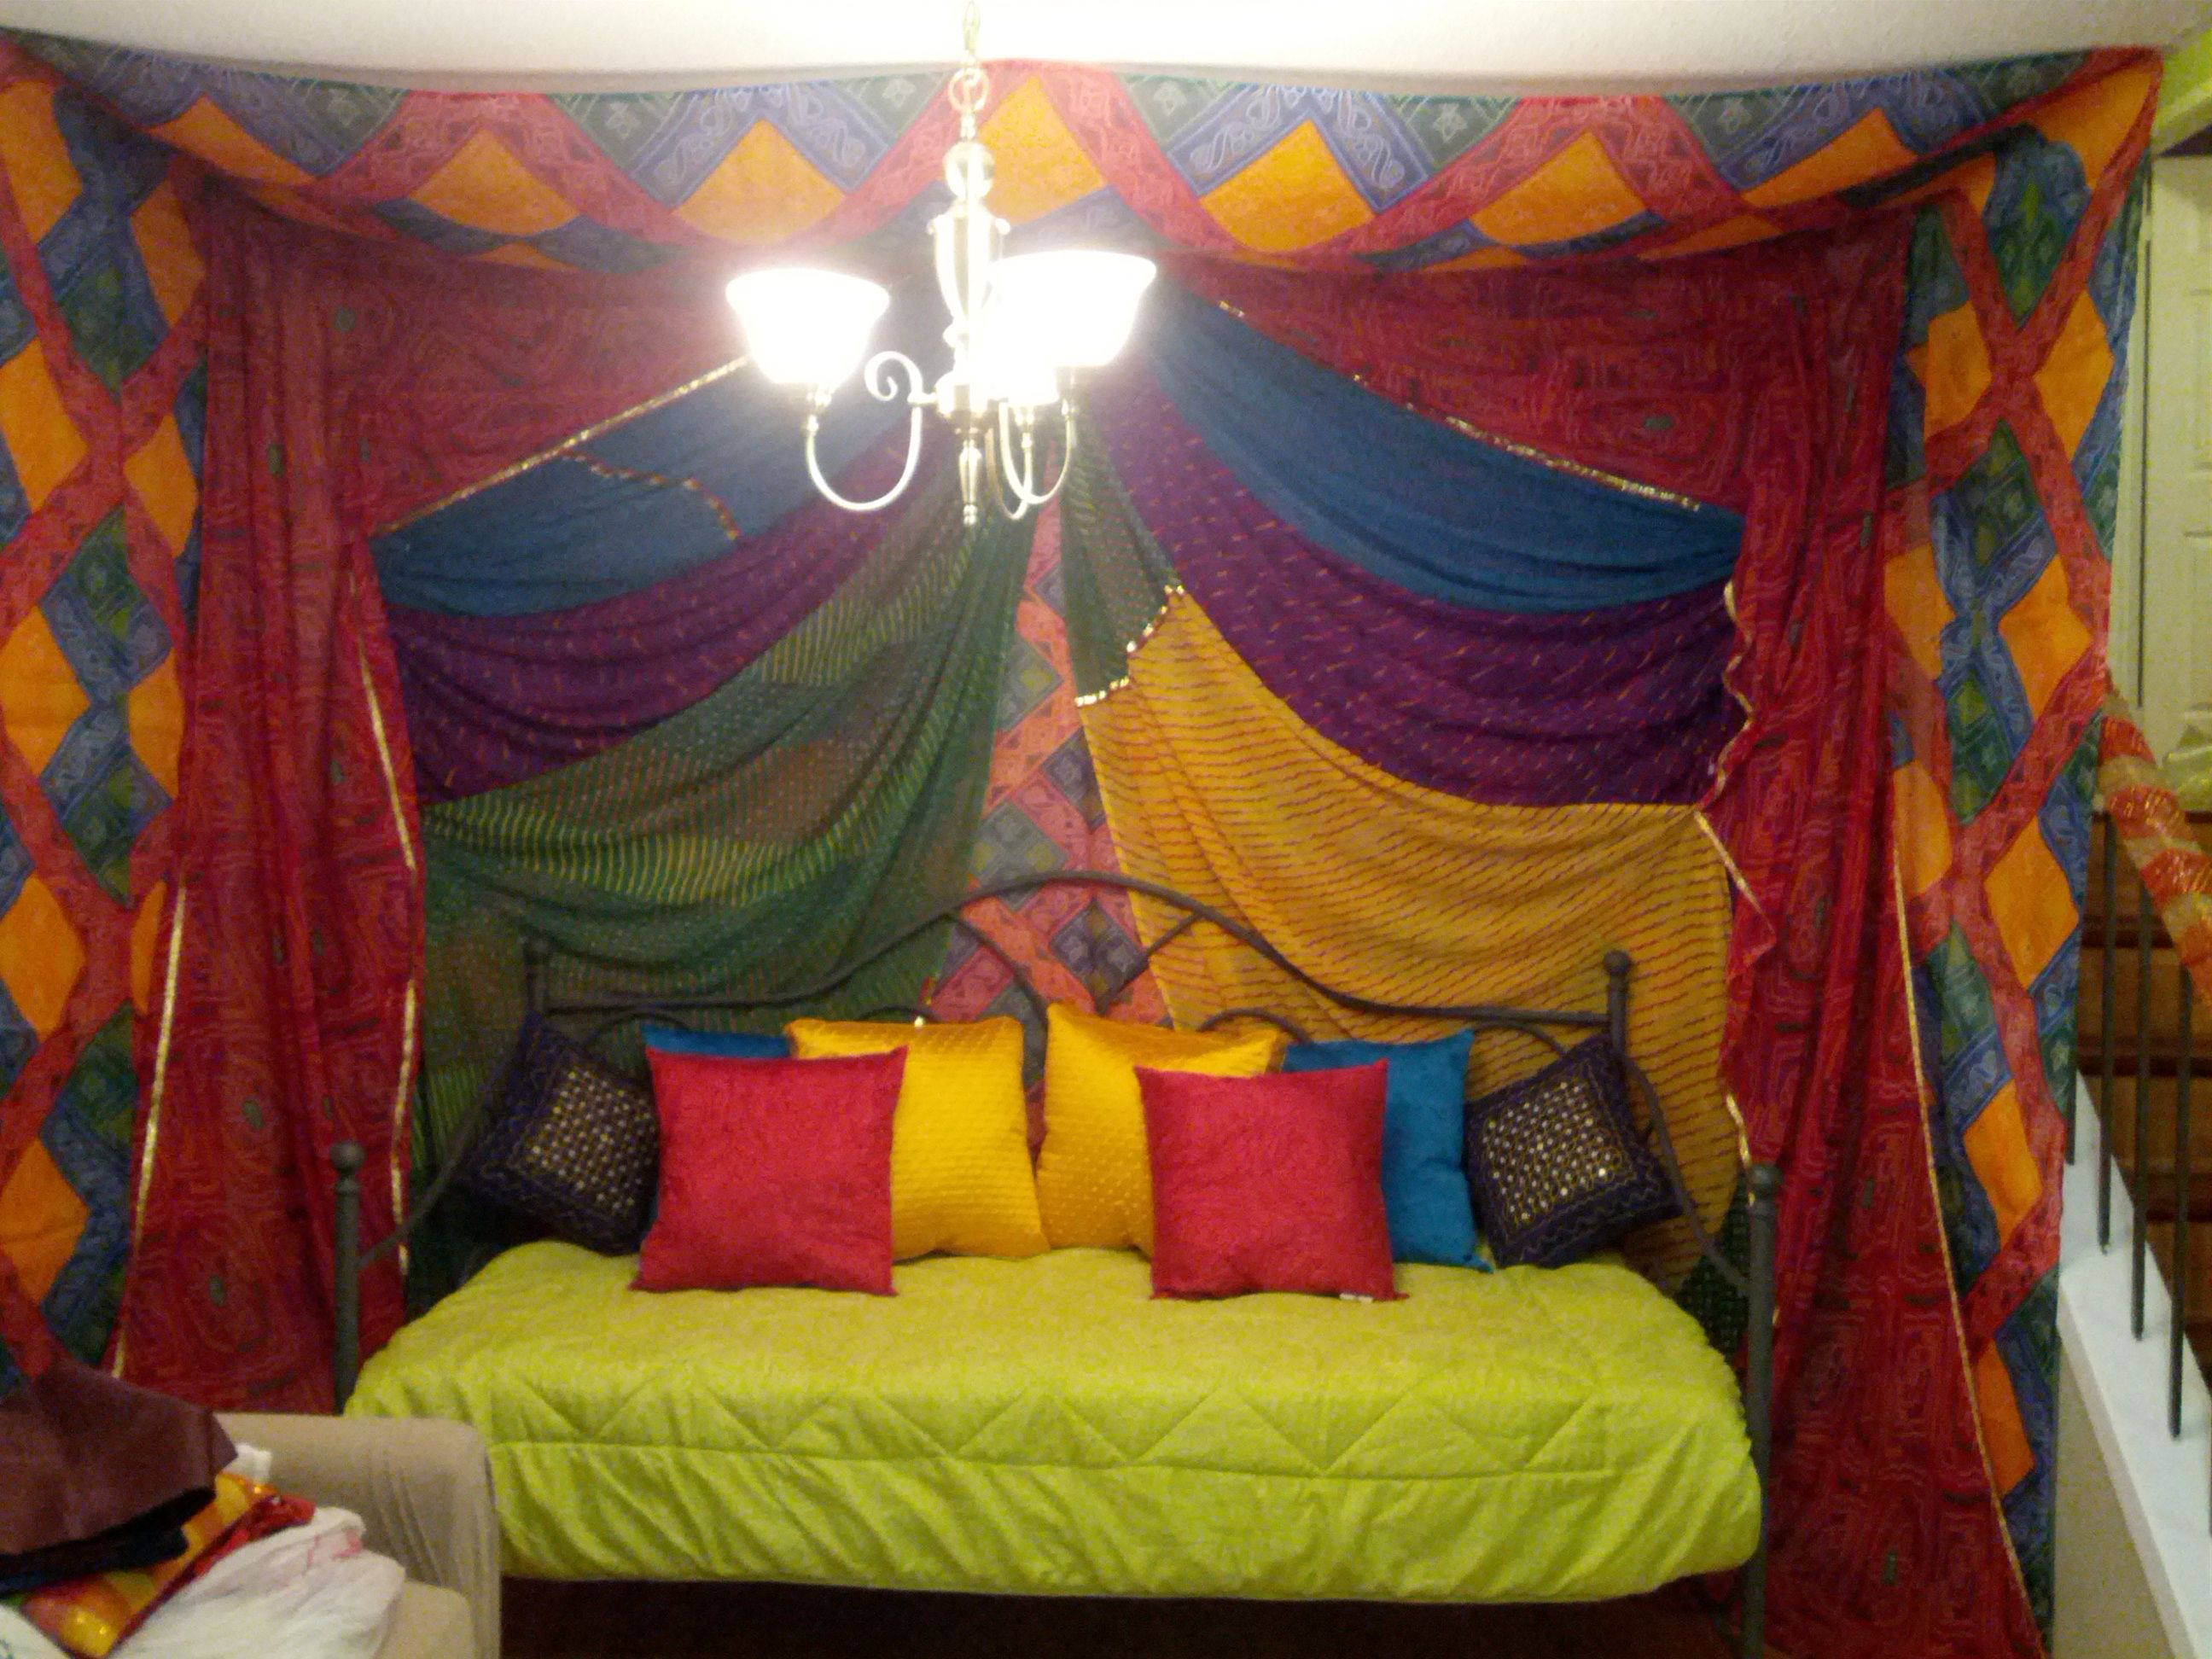 Indian Wedding Decor At Home For A Rajasthani Inspired